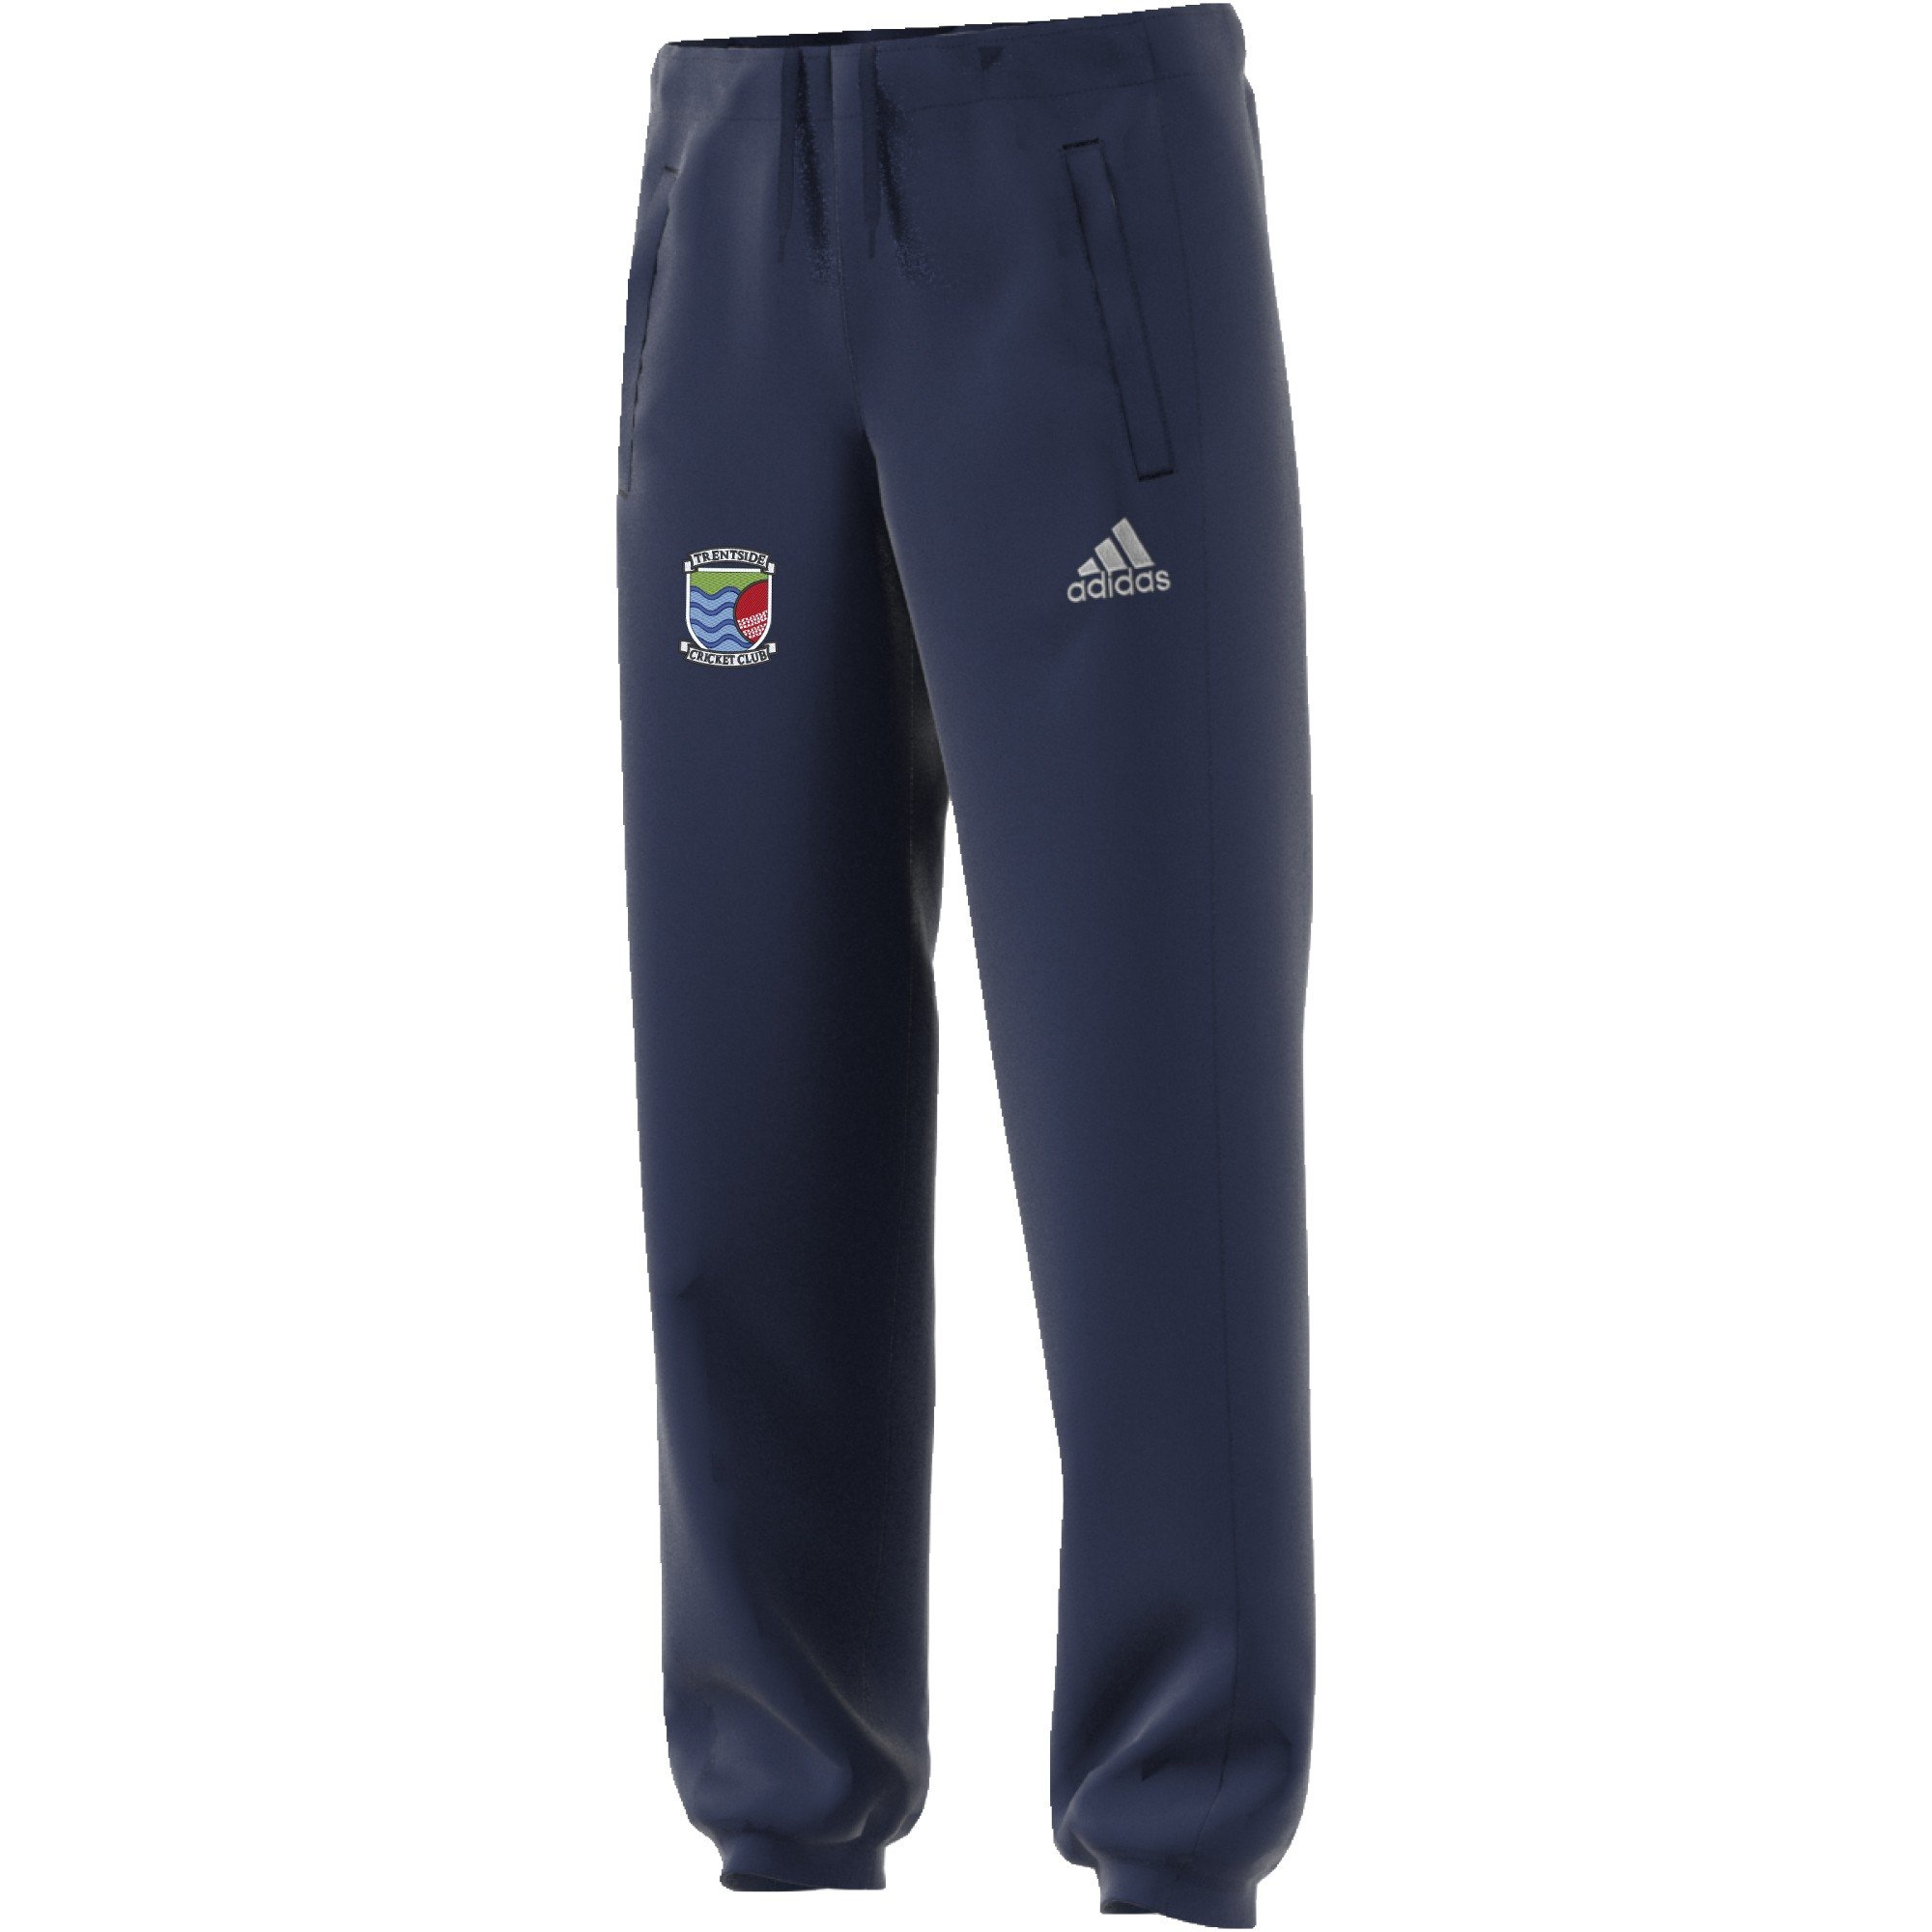 Trentside CC Adidas Navy Sweat Pants